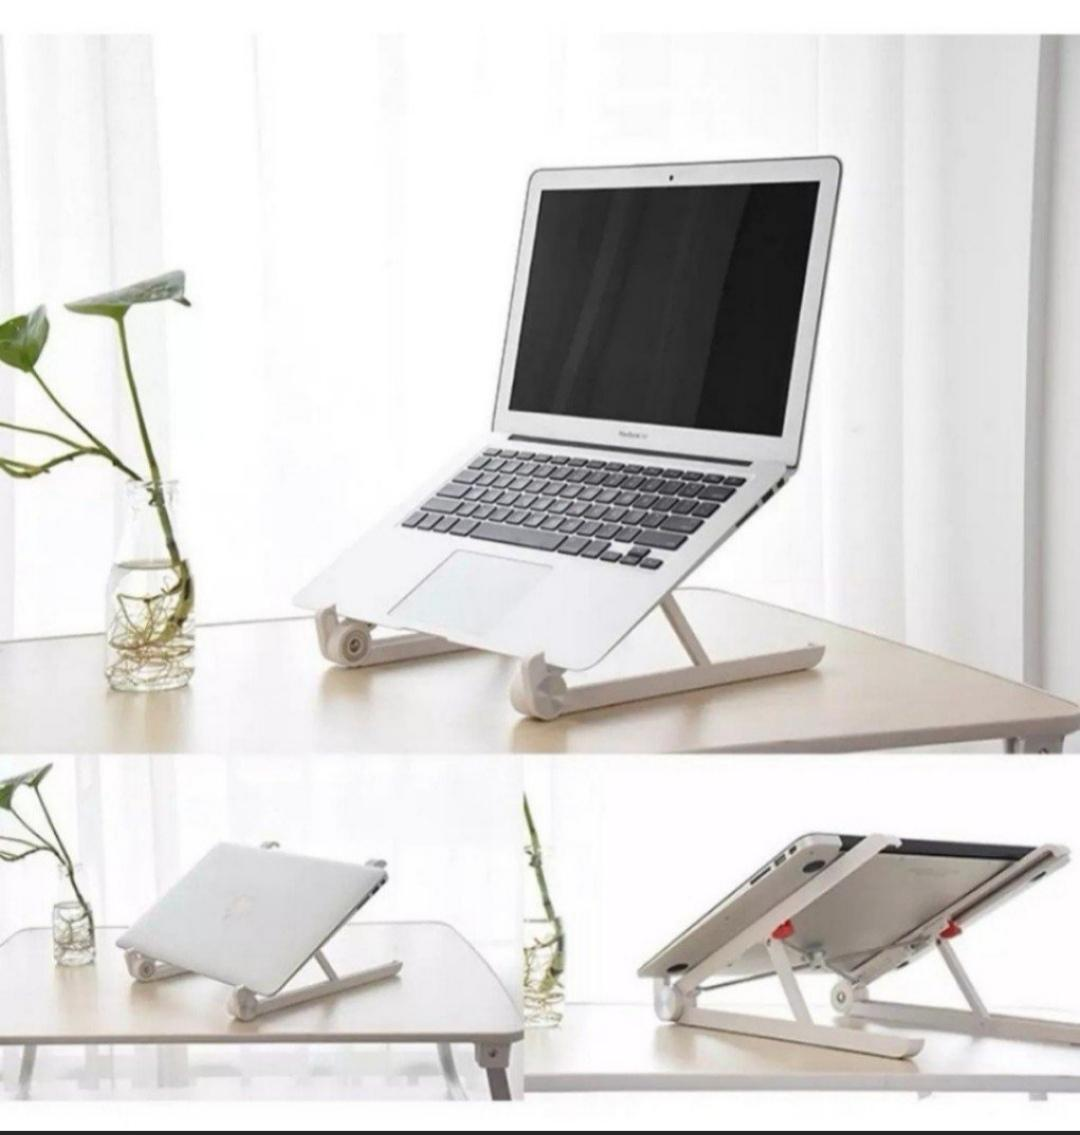 Portable Laptop Stand Foldable Adjustable Notebook Holder Laptop Stand Cooling Universal